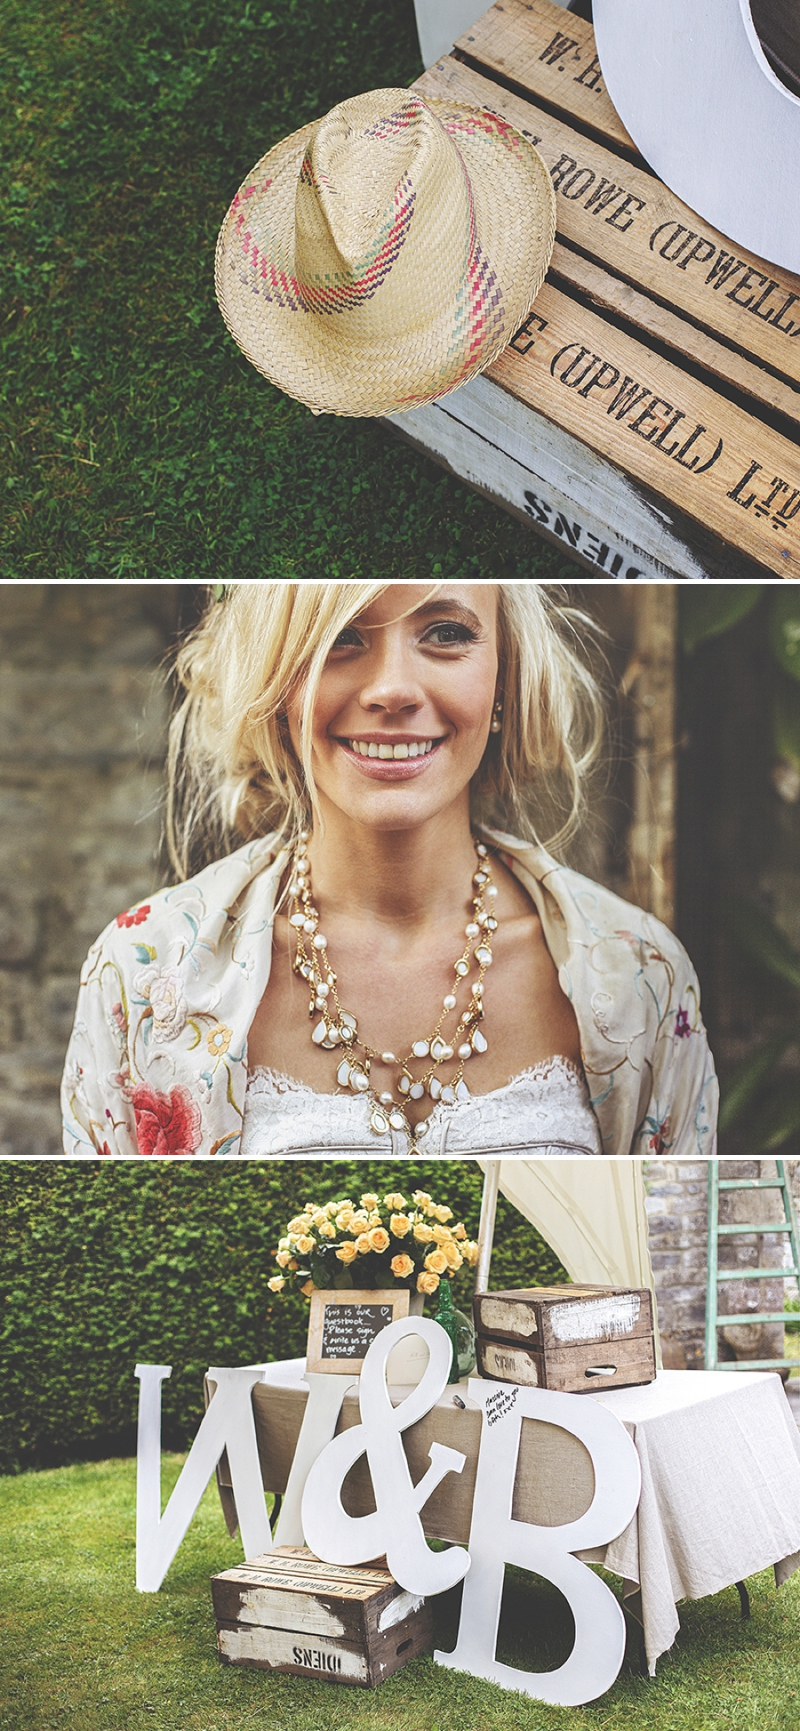 A bespoke designed by the bride wedding dress for a festival Glastonbury themed wedding in Somerset with a floral crown and vintage styling and coral bridesmaids_0479